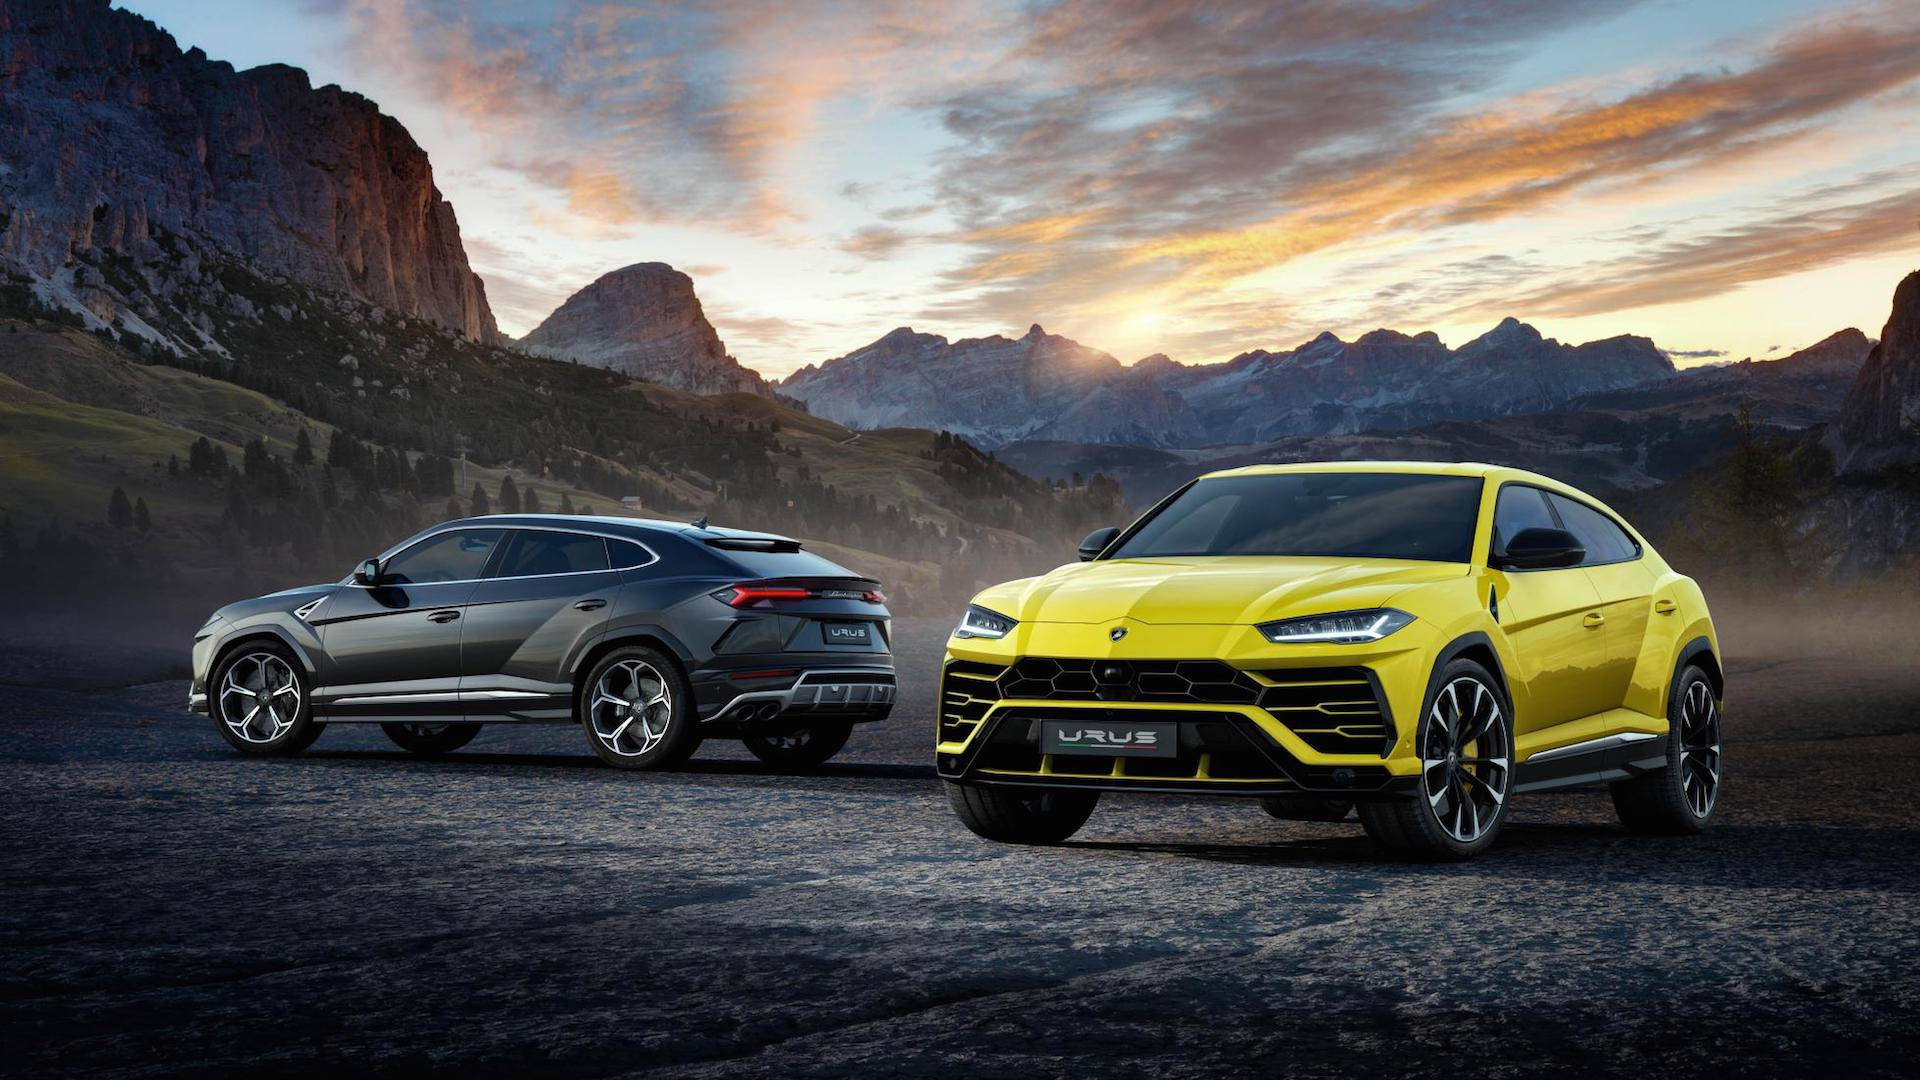 Lamborghini Urus Unveiled With Sportscar Performance